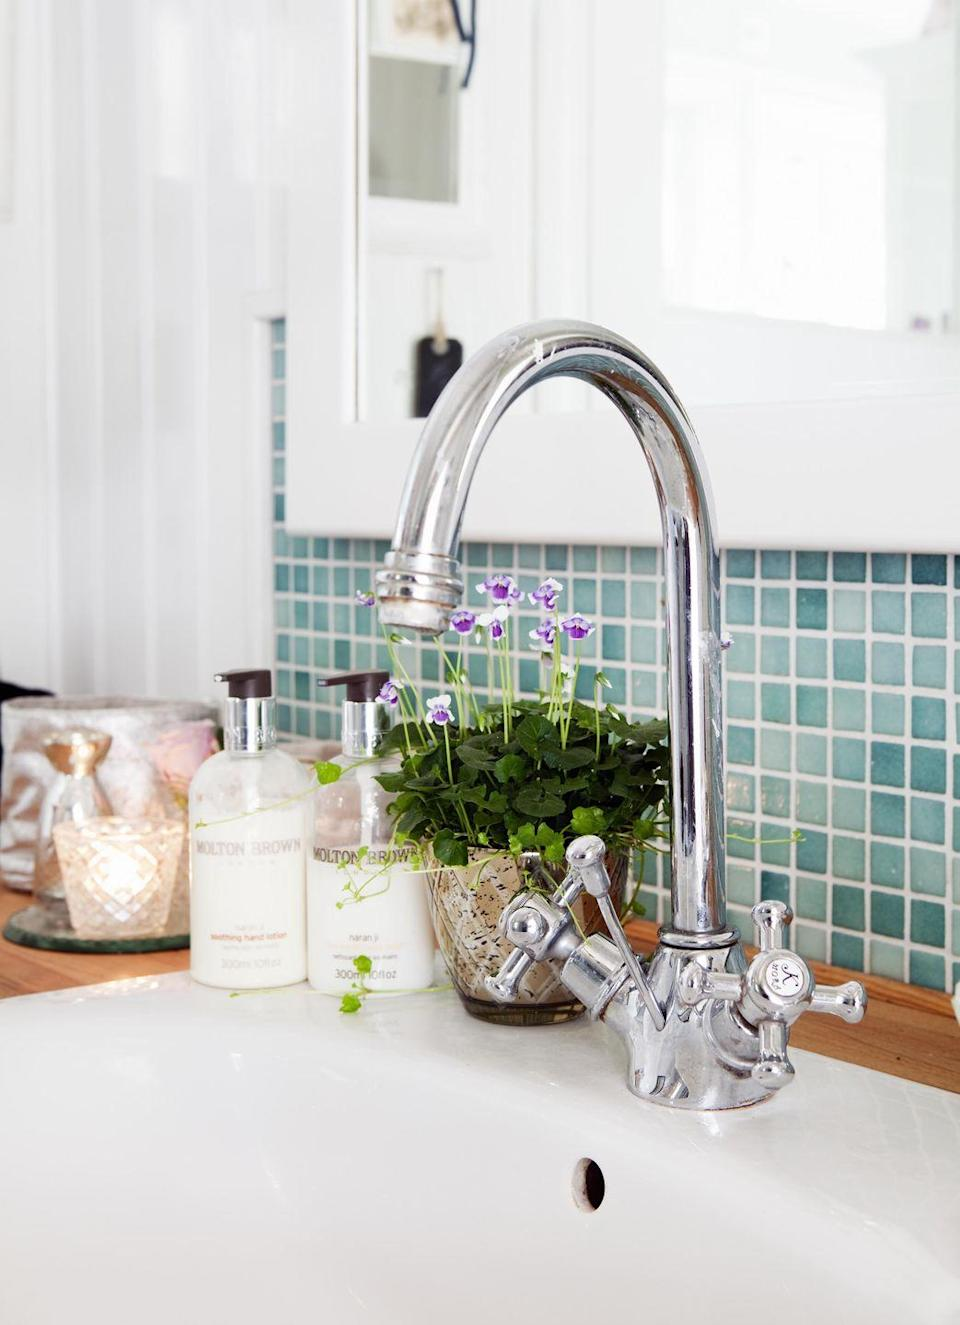 """<p>Even though you might think after washing your hands or the dishes the basin in your sink would be as clean as can be, you actually leave behind <a href=""""http://www.goodhousekeeping.com/home/cleaning/tips/a25748/cleaning-lies/"""" rel=""""nofollow noopener"""" target=""""_blank"""" data-ylk=""""slk:grime and bacteria"""" class=""""link rapid-noclick-resp"""">grime and bacteria</a> that sticks to the basin's walls. If you're serious about being clean, Forte says you should use an eraser-type sponge (like <a href=""""http://www.goodhousekeeping.com/home-products/g901/game-changing-cleaners/?slide=9"""" rel=""""nofollow noopener"""" target=""""_blank"""" data-ylk=""""slk:Mr. Clean Magic Eraser"""" class=""""link rapid-noclick-resp"""">Mr. Clean Magic Eraser</a>) to remove marks, then <a href=""""http://www.goodhousekeeping.com/home/cleaning/tips/a18464/kitchen-sink-cleaning-tips/"""" rel=""""nofollow noopener"""" target=""""_blank"""" data-ylk=""""slk:sanitize"""" class=""""link rapid-noclick-resp"""">sanitize</a> by plugging the drain, filling the basin with warm water, and swishing a tablespoon of bleach around. Let it sit for five minutes, then rinse and air dry.</p>"""